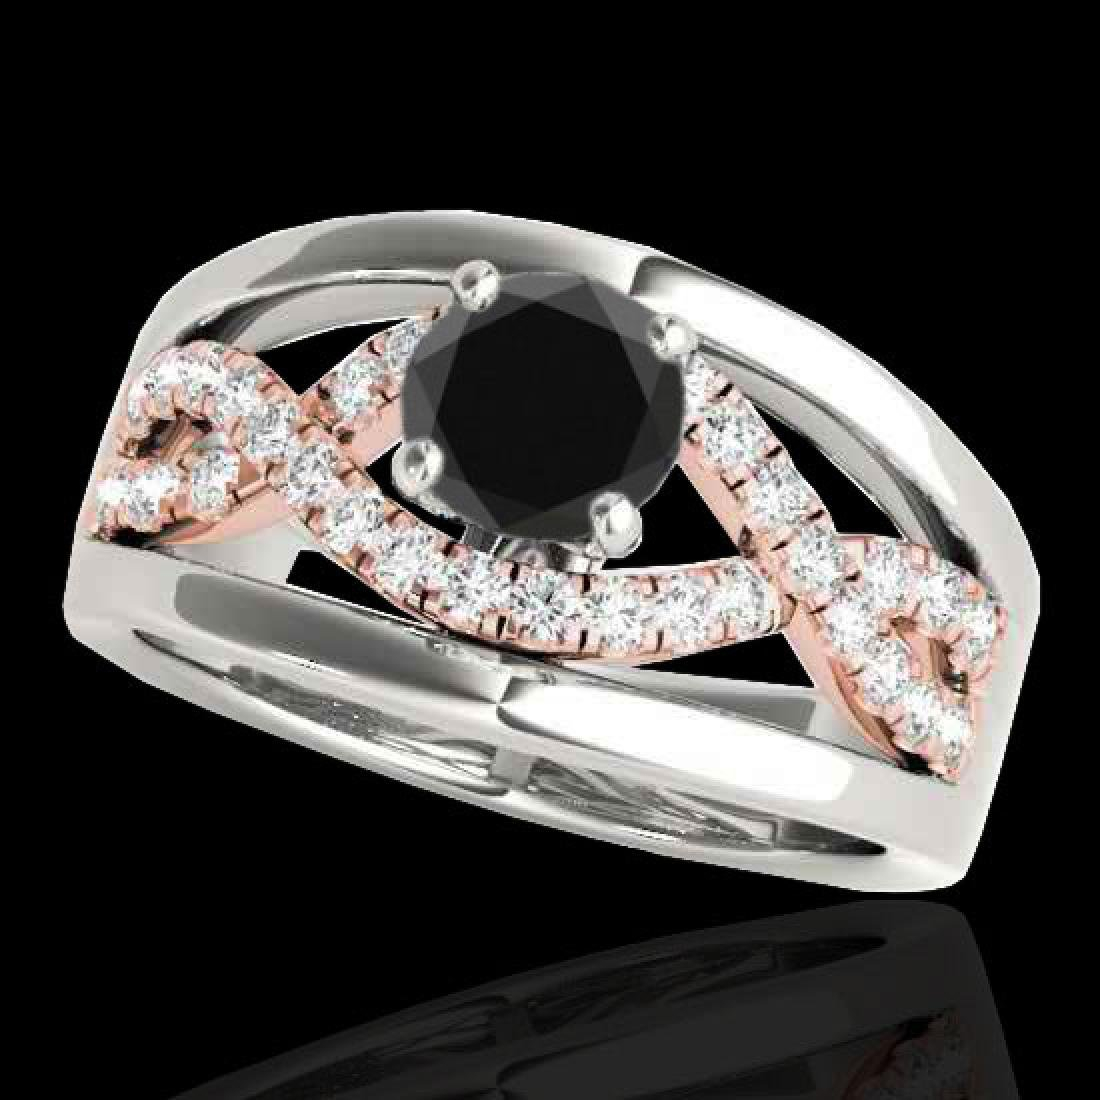 1.55 CTW Certified VS Black Diamond Solitaire Ring 10K